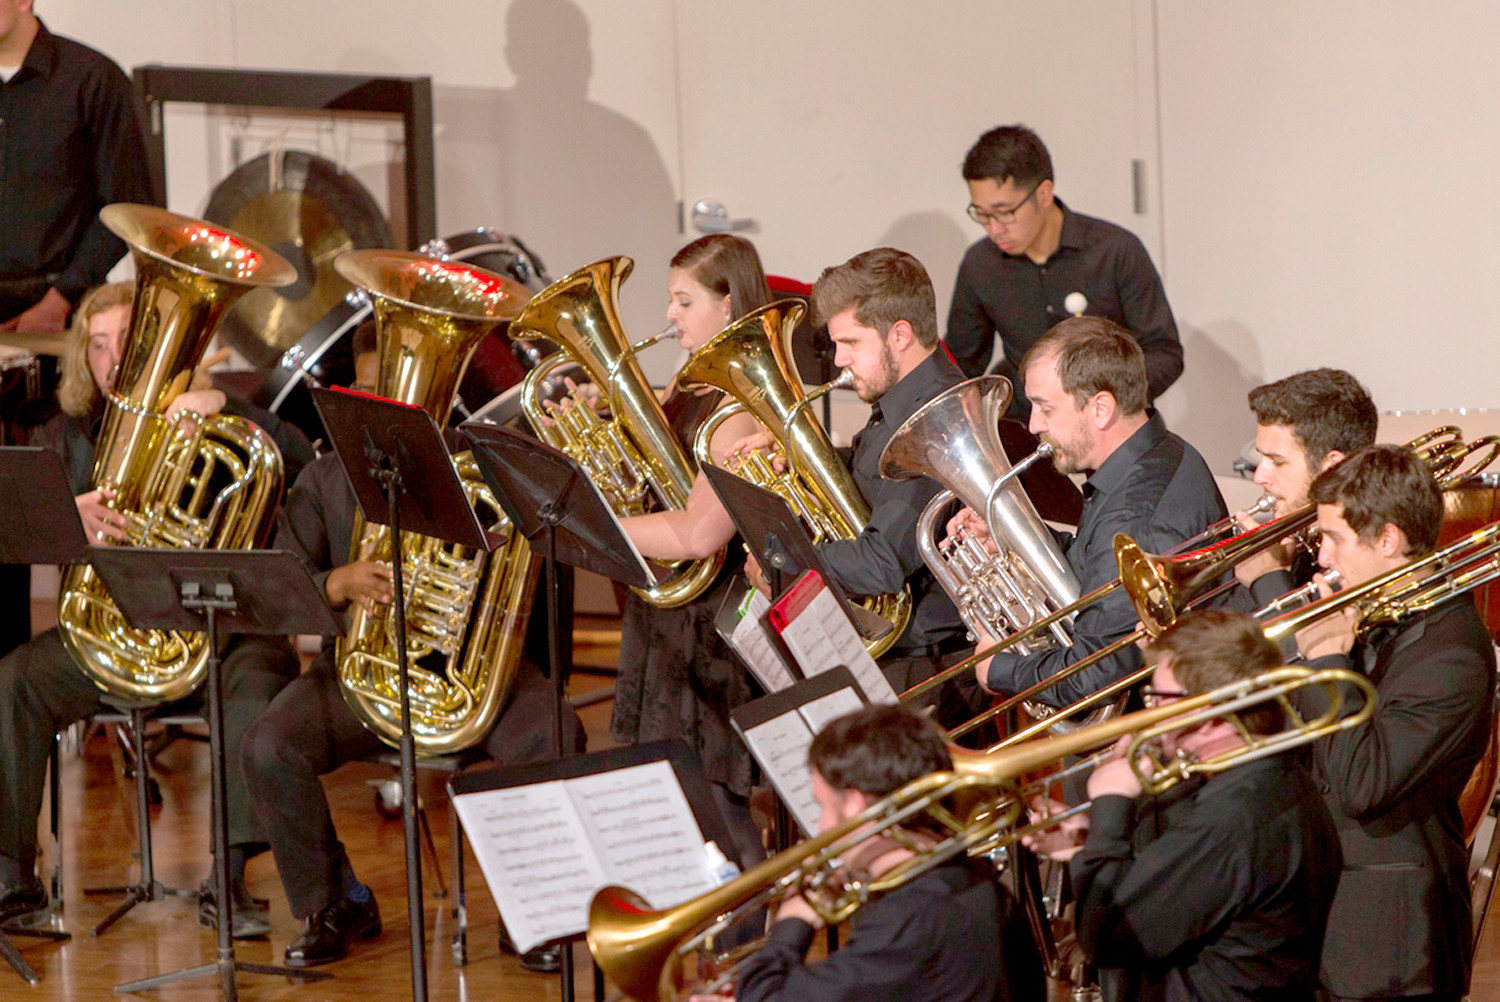 Lee University's School of Music Brass Choir will be in concert Tuesday at 7:30 p.m.